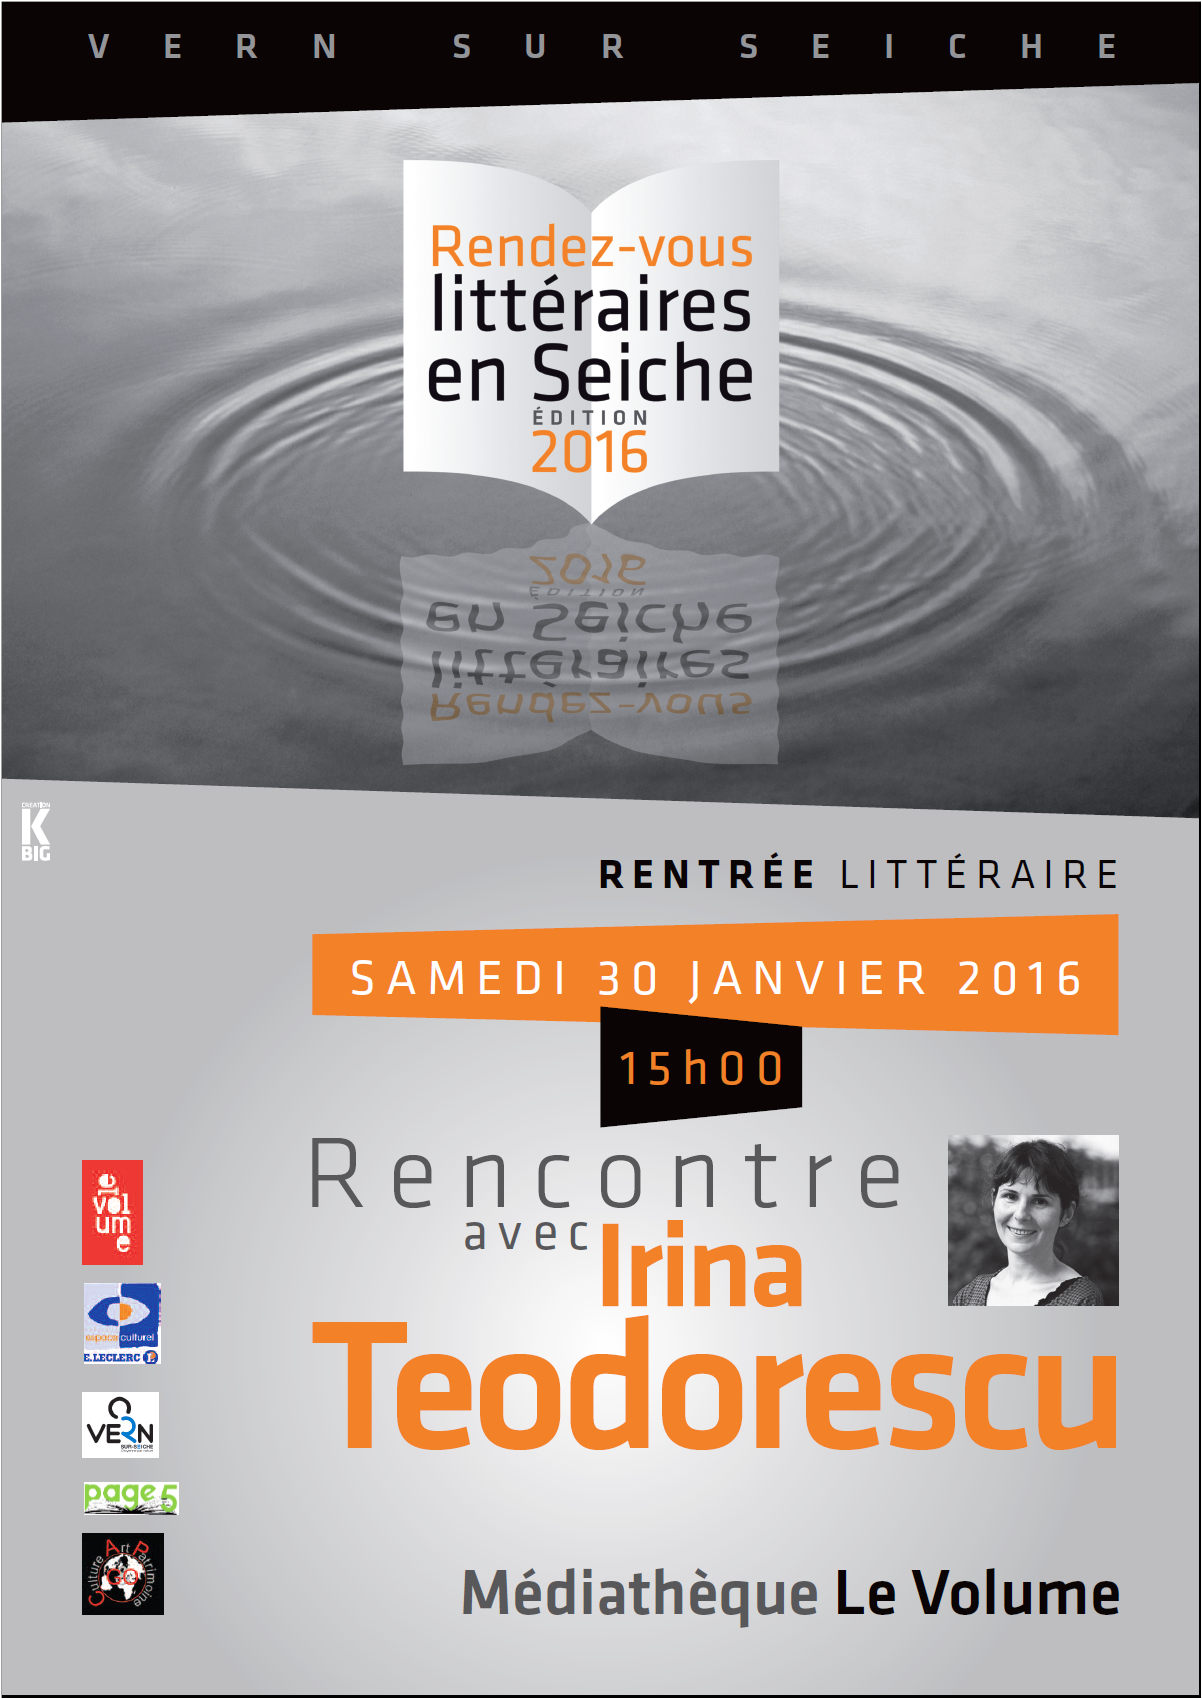 Rencontre litteraire